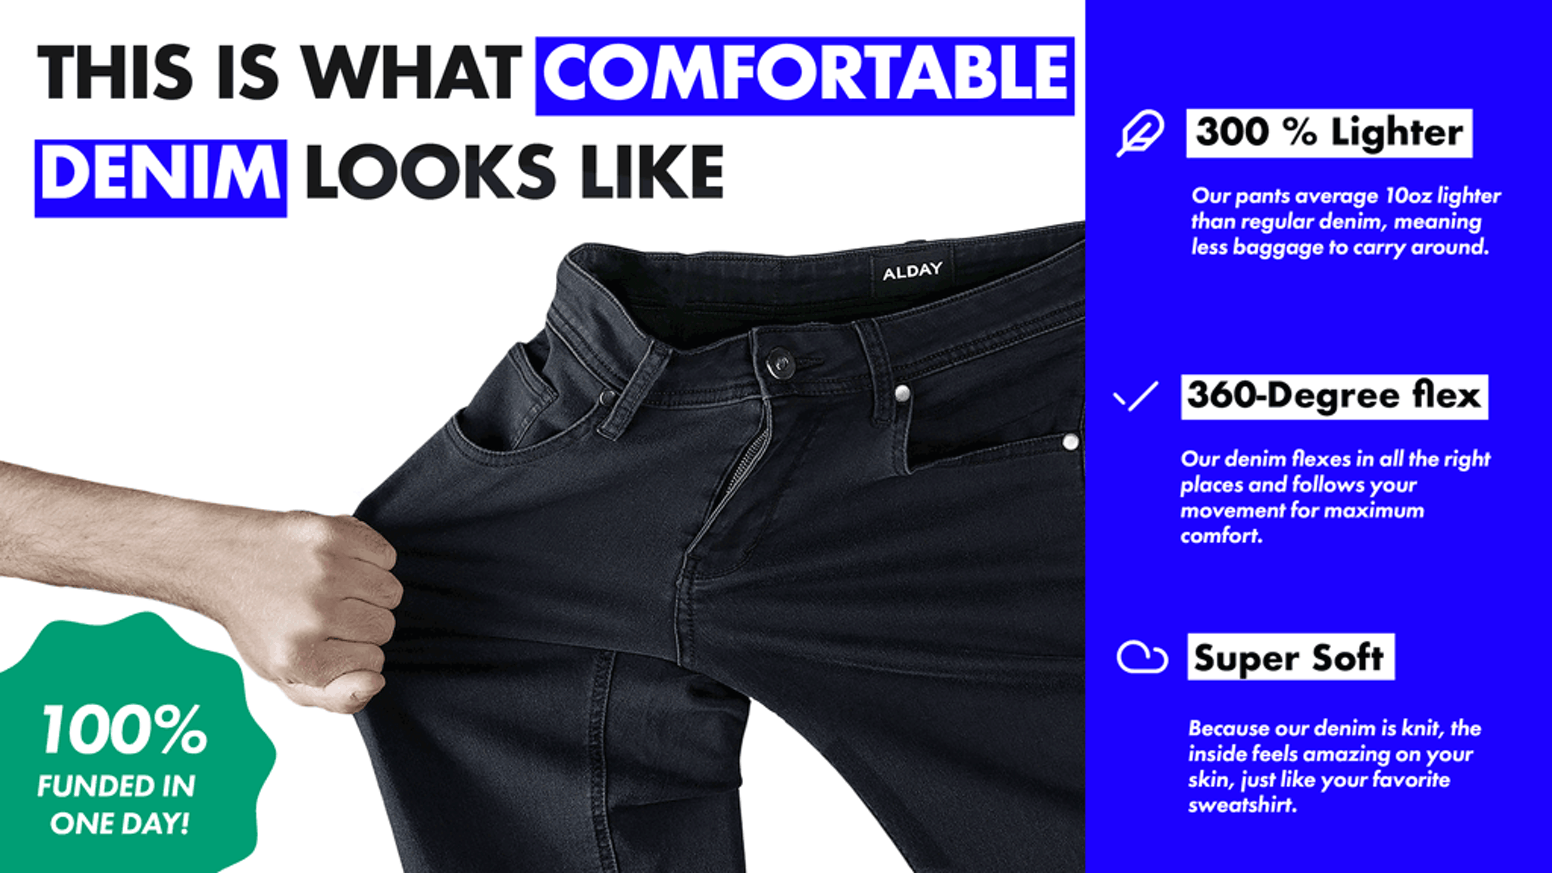 32b13495f6e5 We've combined the best features from both sweats and denim to create a  super